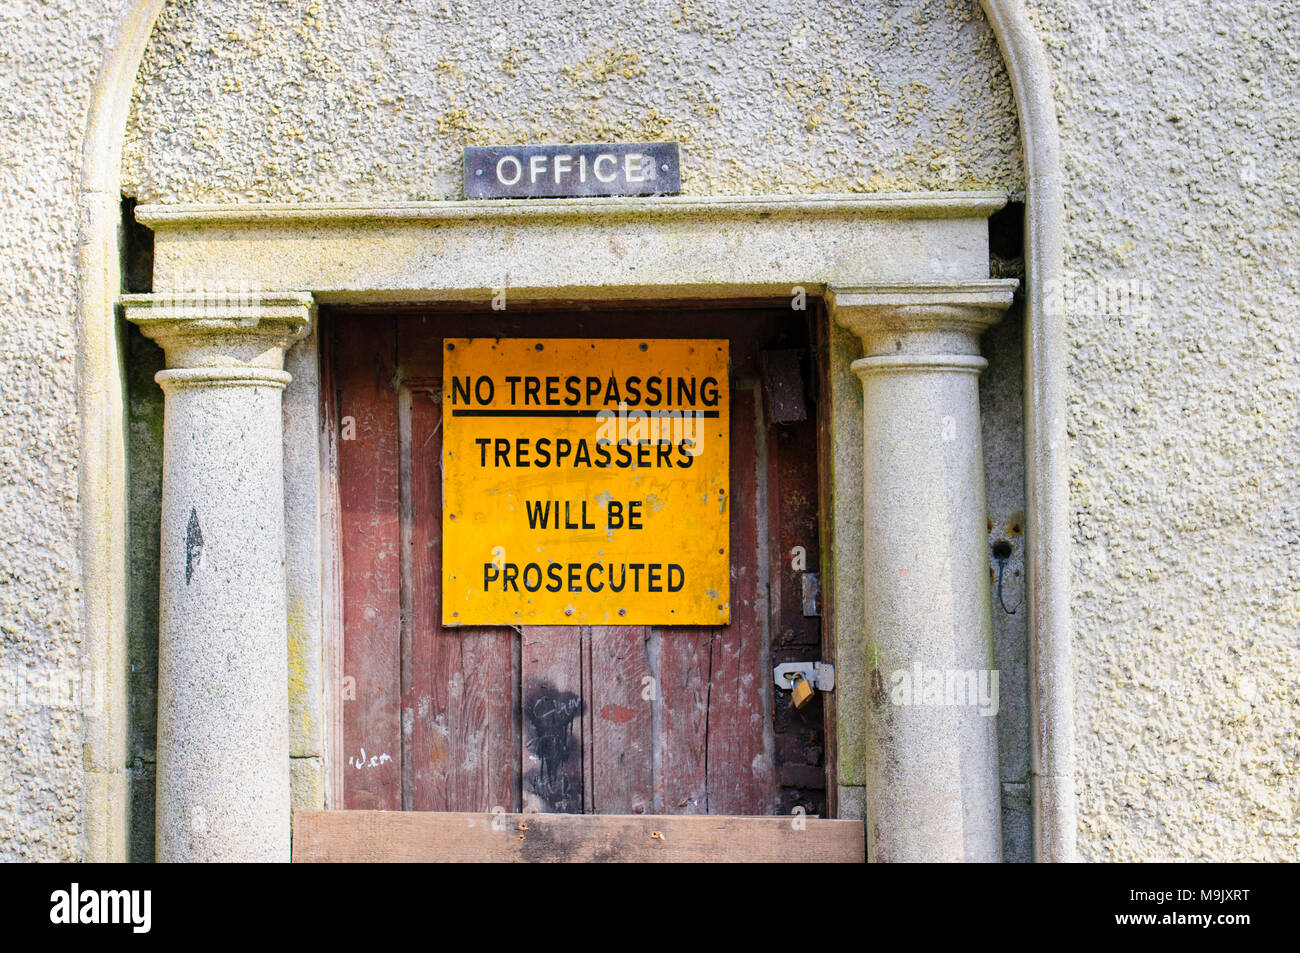 Sign at a building warning that trespassers will be prosecuted. - Stock Image